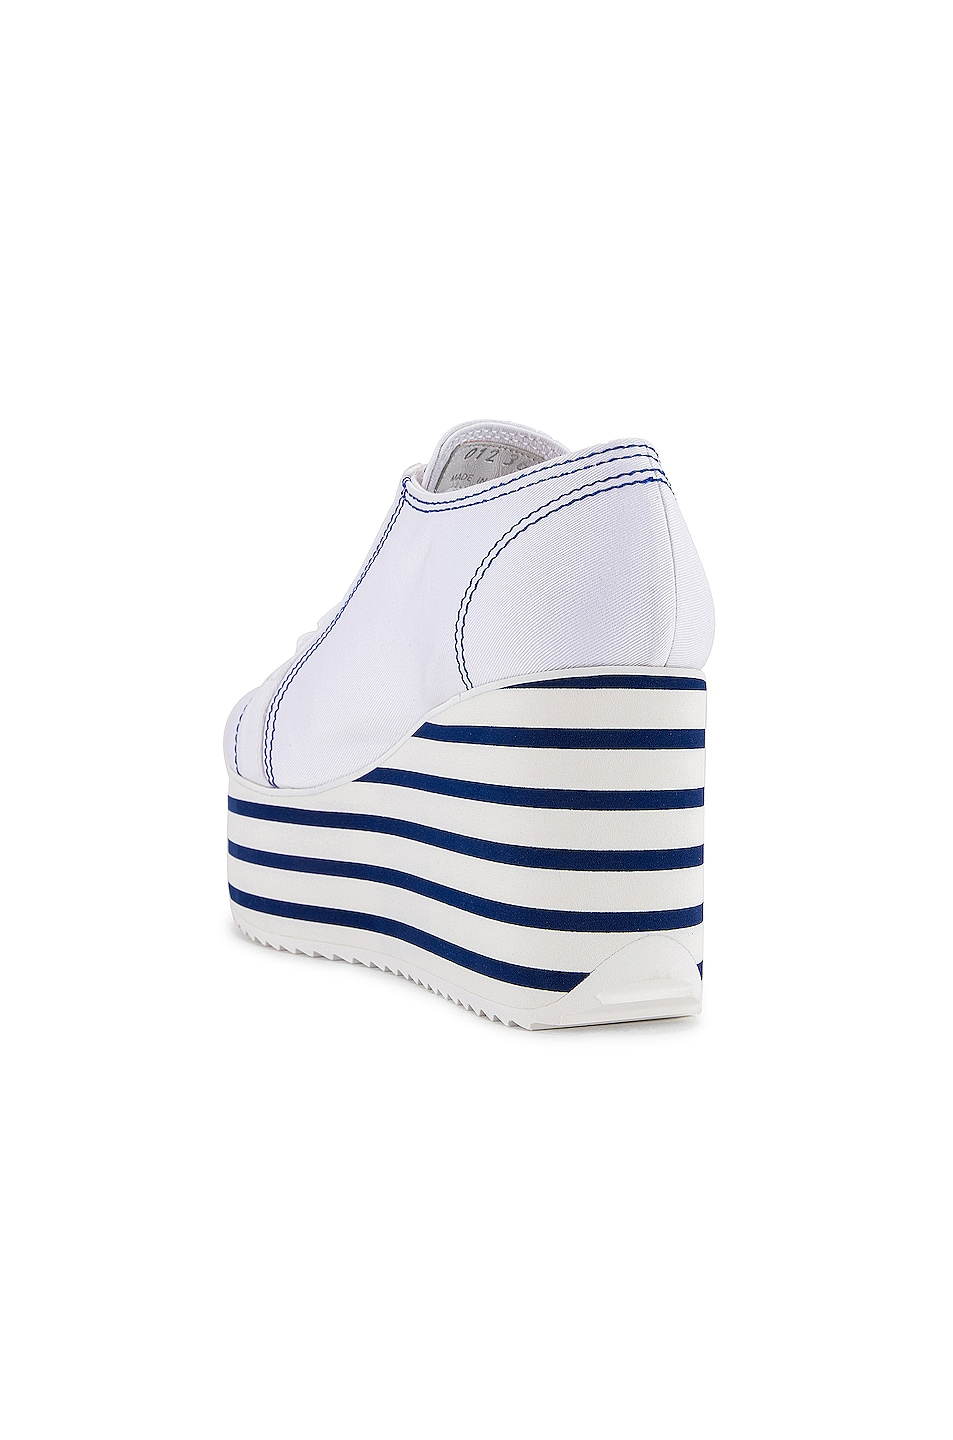 Image 3 of Miu Miu Platform Sneakers in Bianco & Bluette